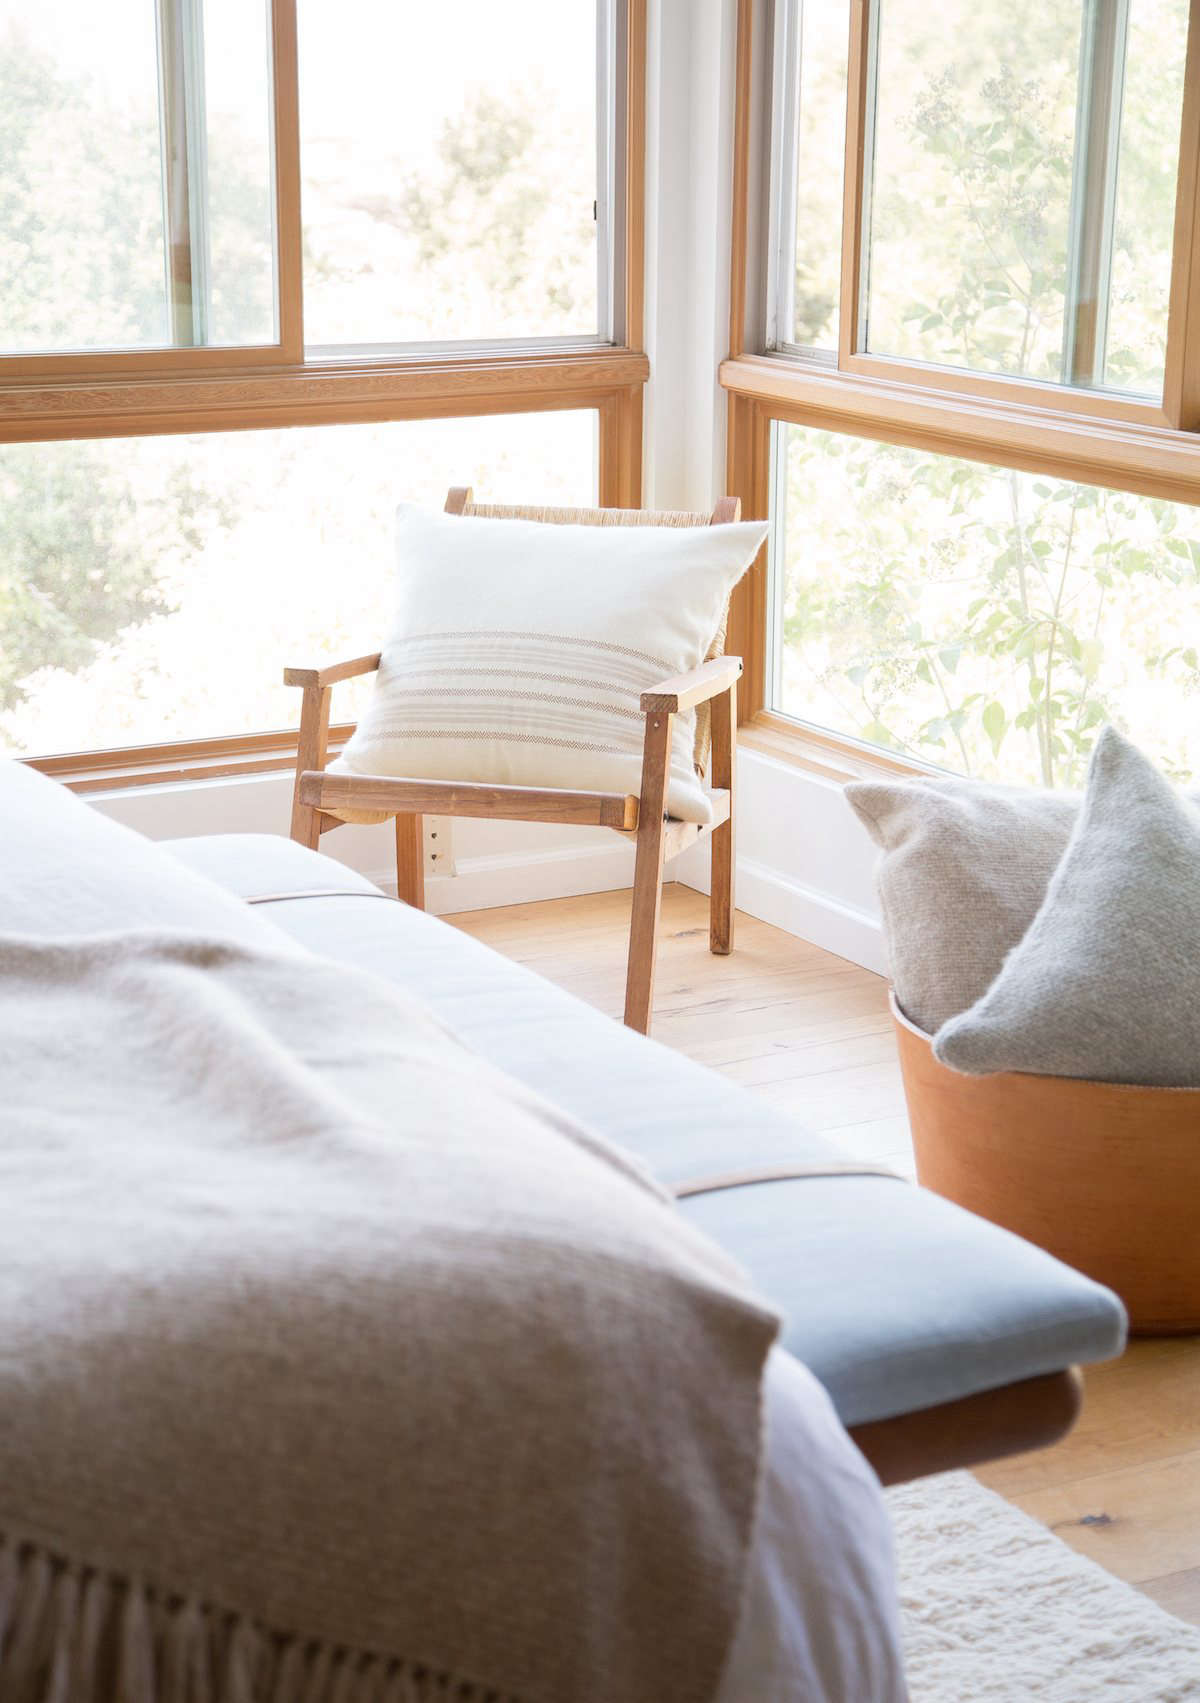 A leather basket from Jenni Kayne stores more alpaca basketweave pillows. At the end of the bed is a vintage wood bench from Lawson-Fenning in LA, covered in blue linen with added leather straps.